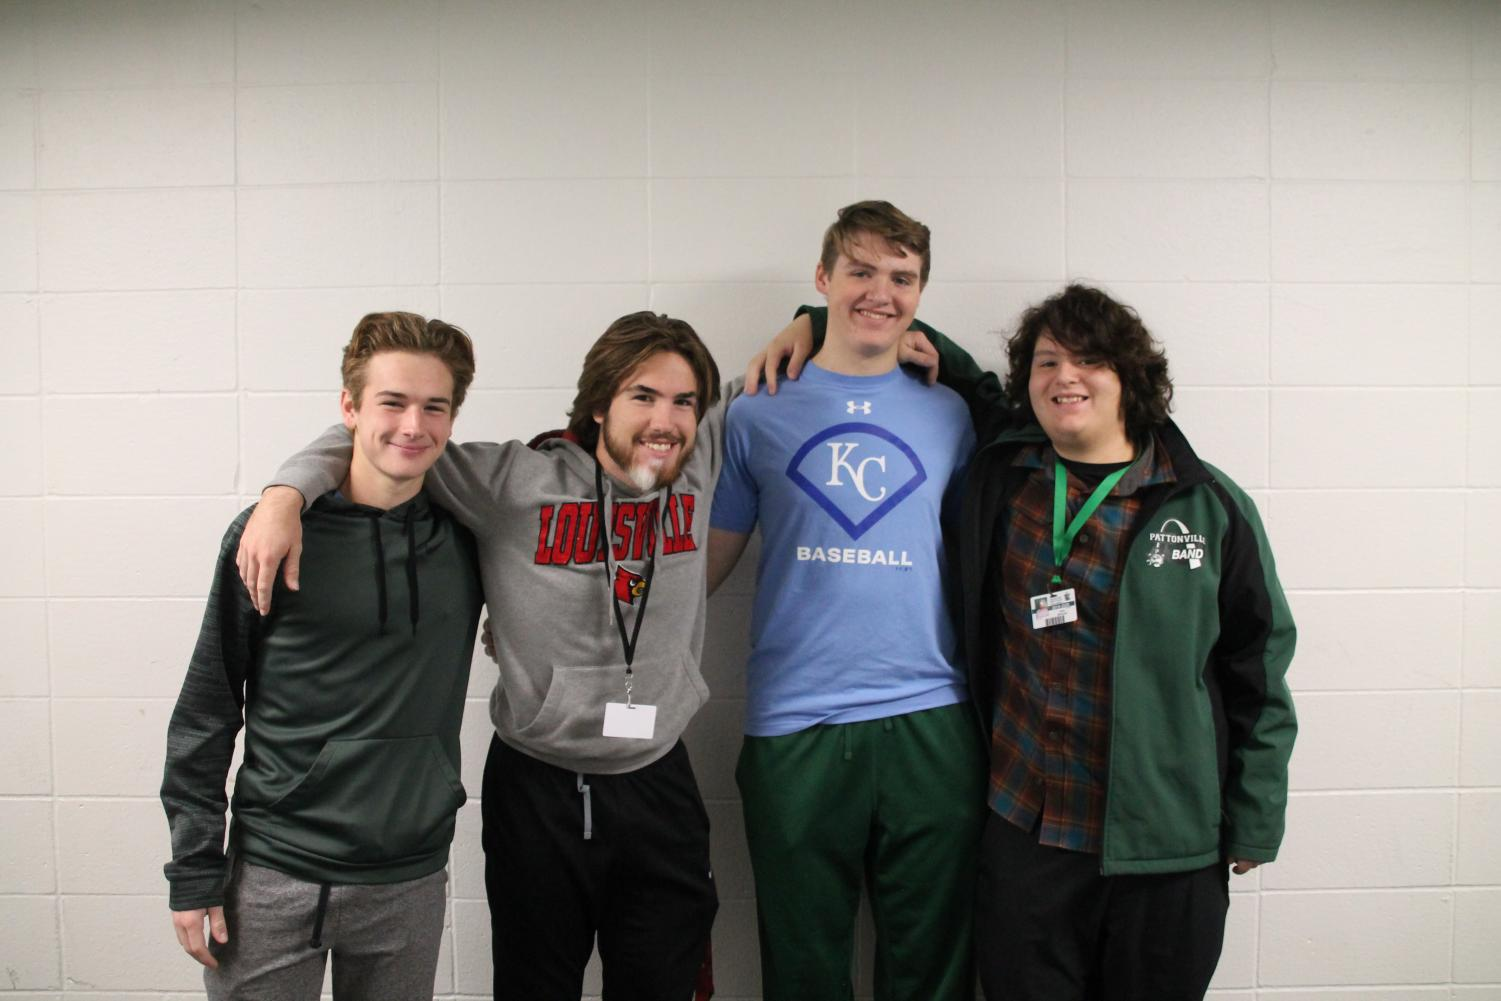 Max McFarland, Thomas McFarland, Owen Moeller, and Seth Miranda represent PHS in All-Suburban Band